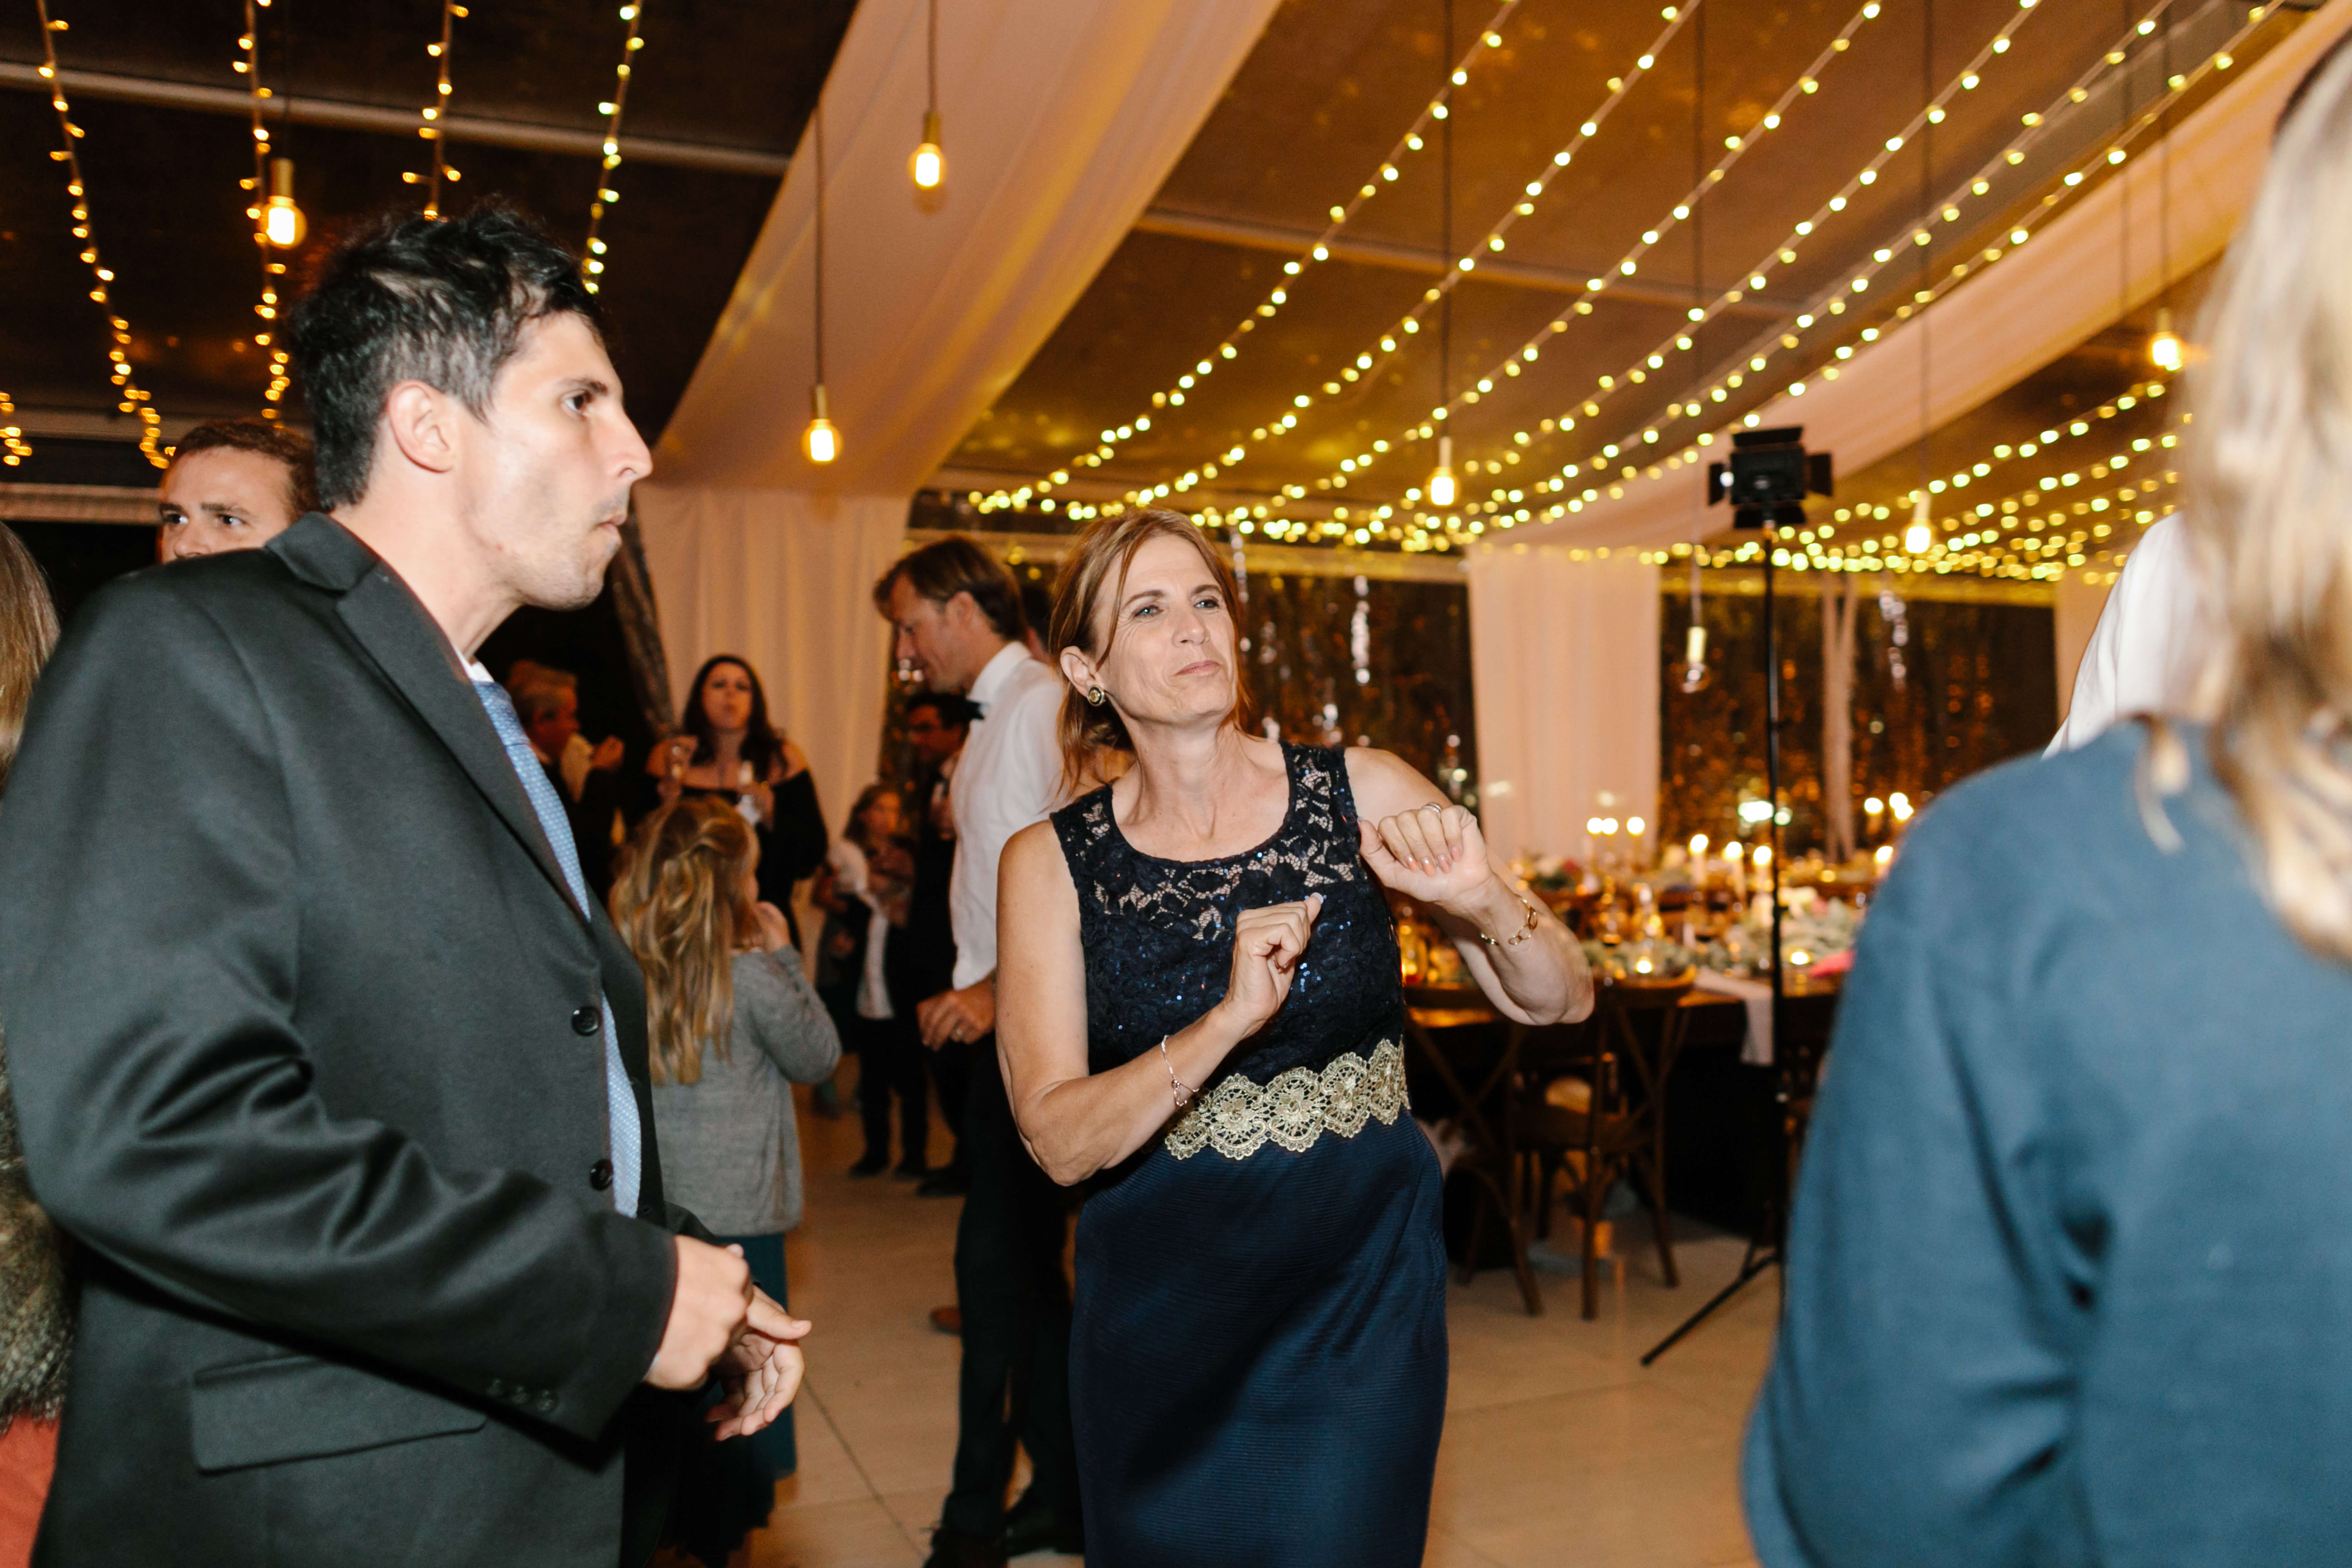 A woman and man dancing funnily at a wedding.